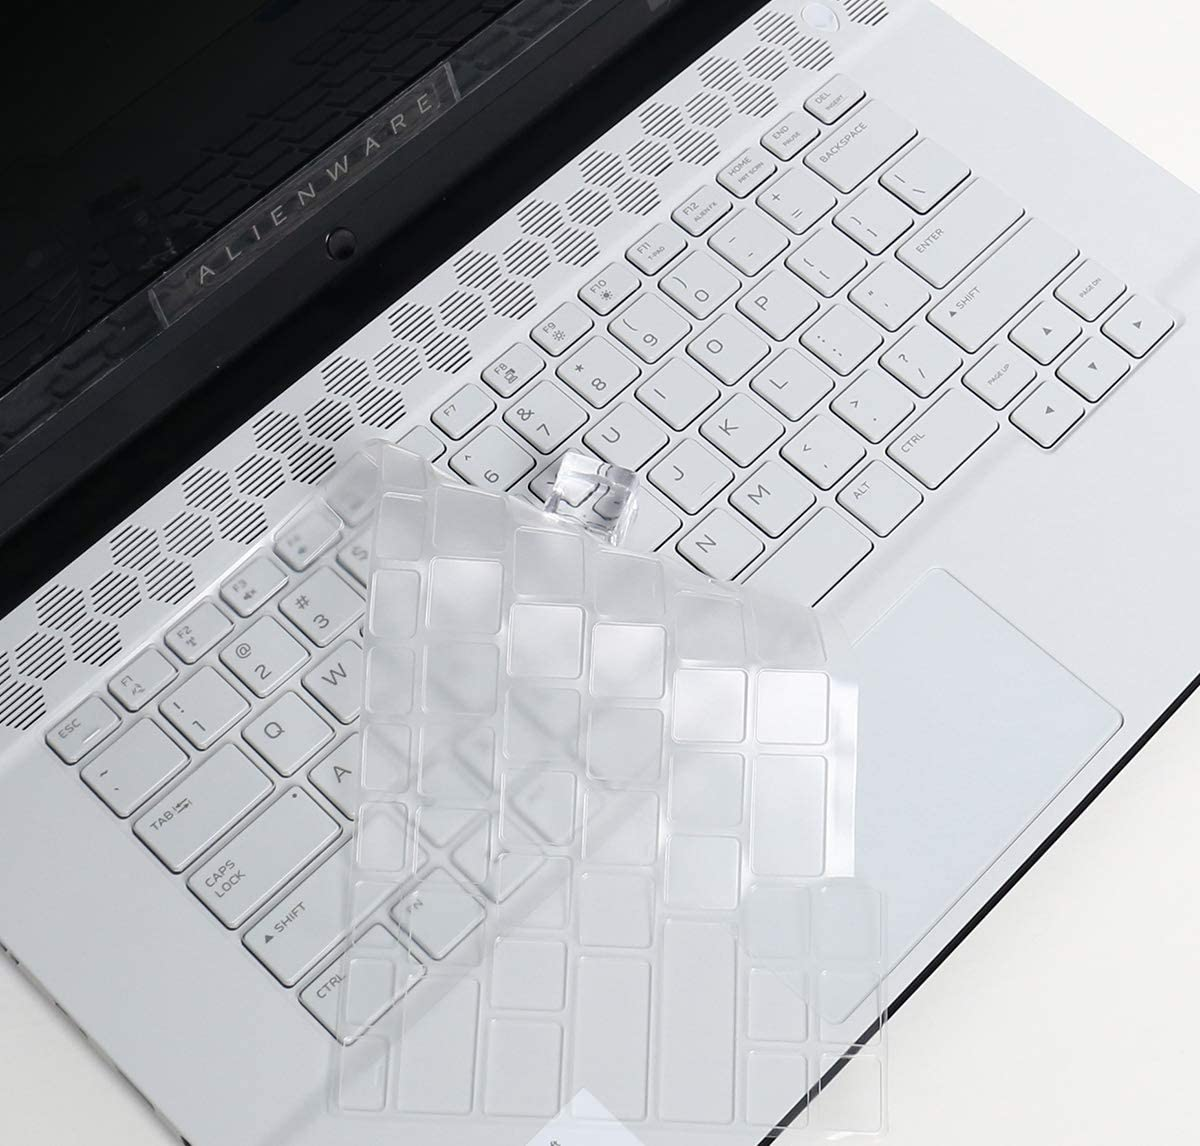 Lapogy Keyboard Cover Skin for 2019 Dell Alienware M15 R2 15.6 inch Gaming Laptop Accessories, Ultra Thin TPU Keyboard Protector for Dell Alienware M15 R2 Laptop Without Numeric Keypad